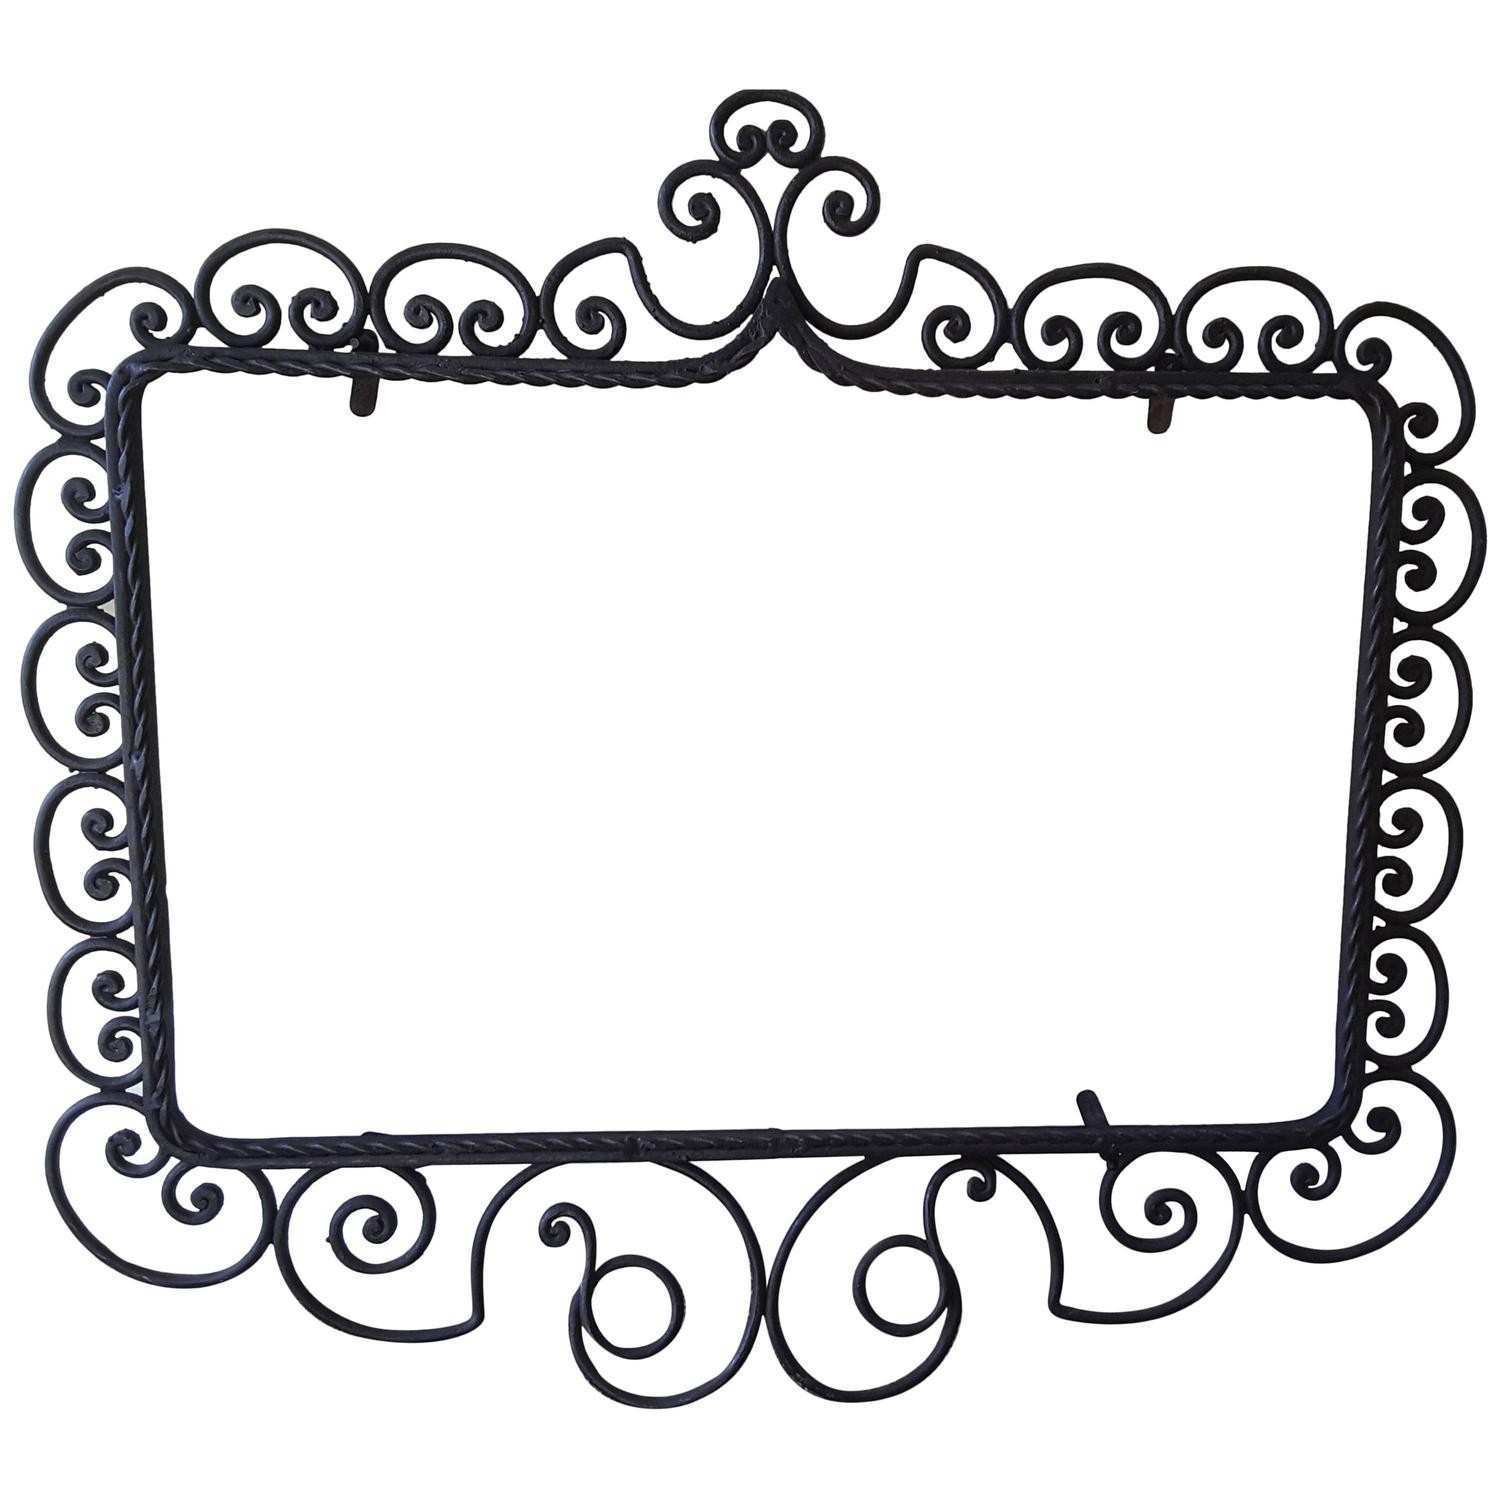 Antique & Vintage Mirrors For Sale in Toronto Near Me